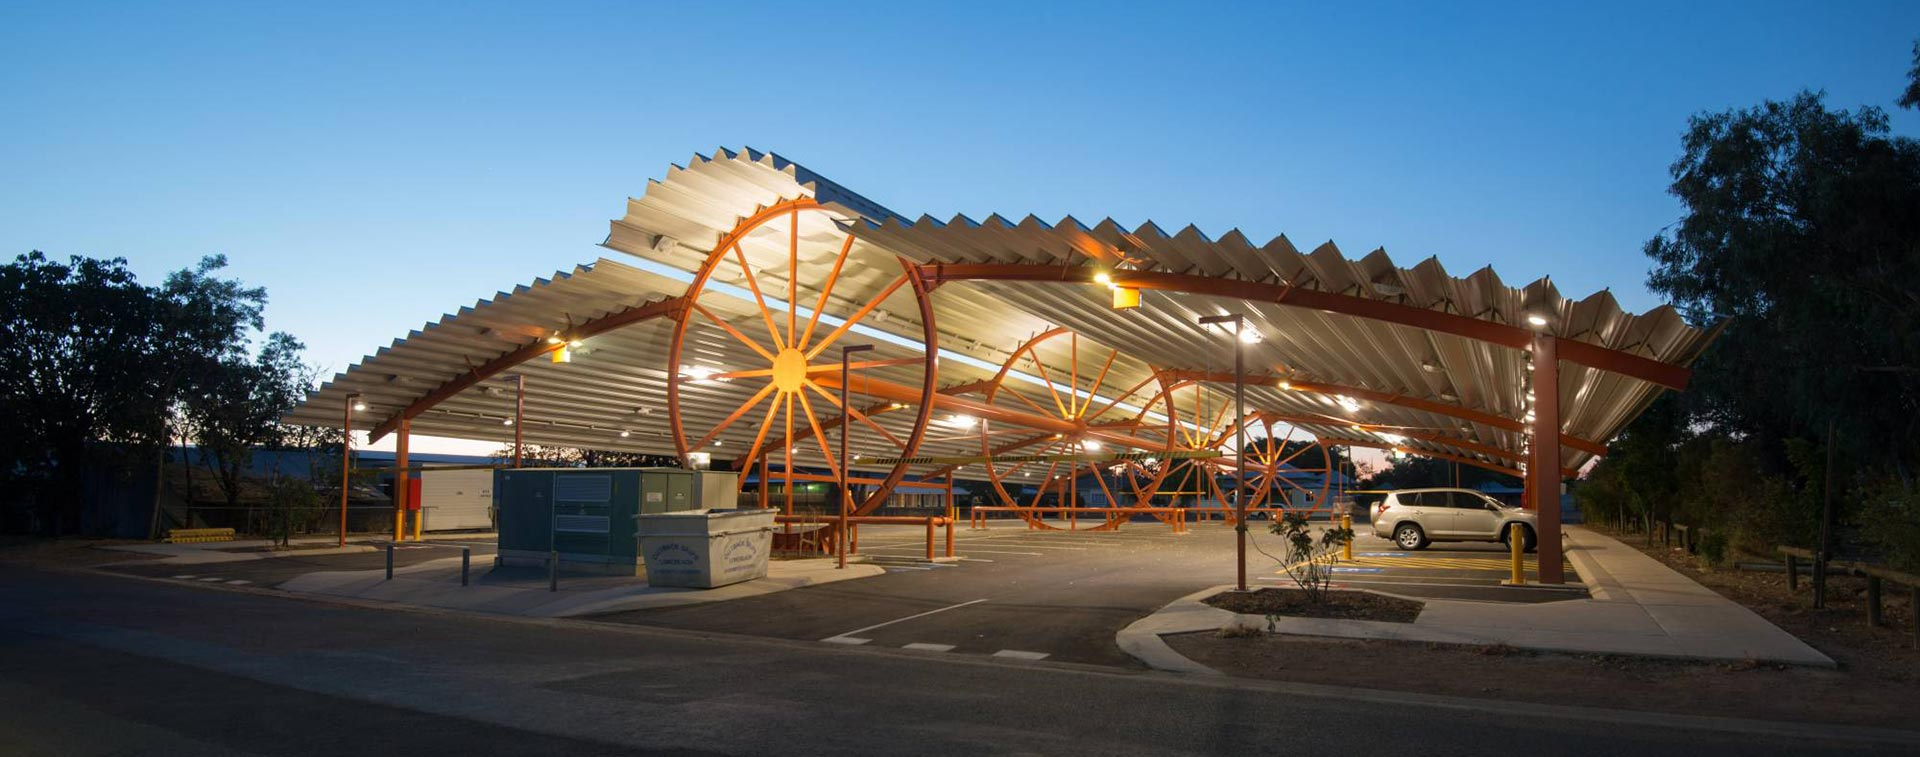 Shade Structures For Car Parking Areas